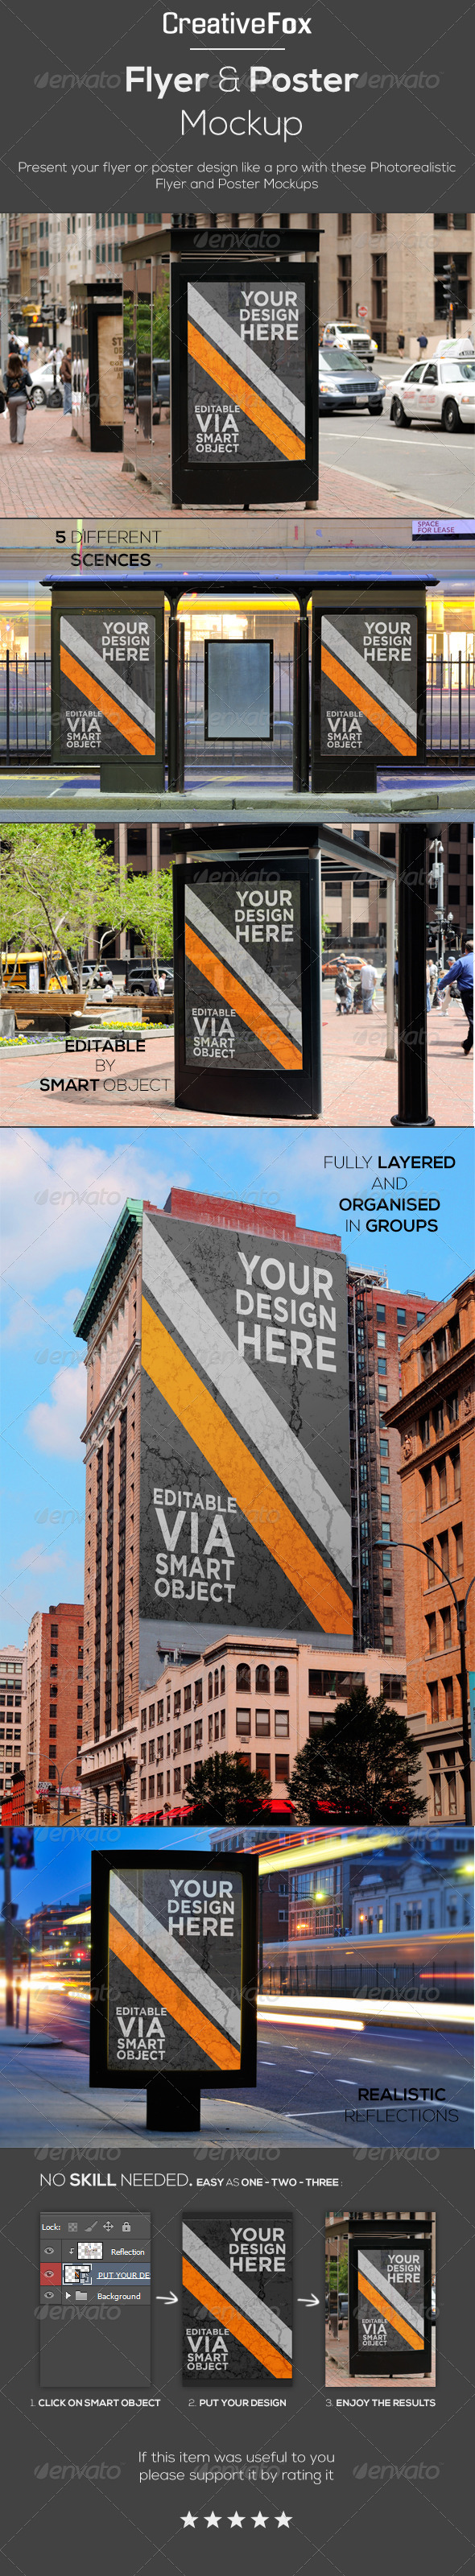 GraphicRiver Flyer & Poster Mockup 5598814